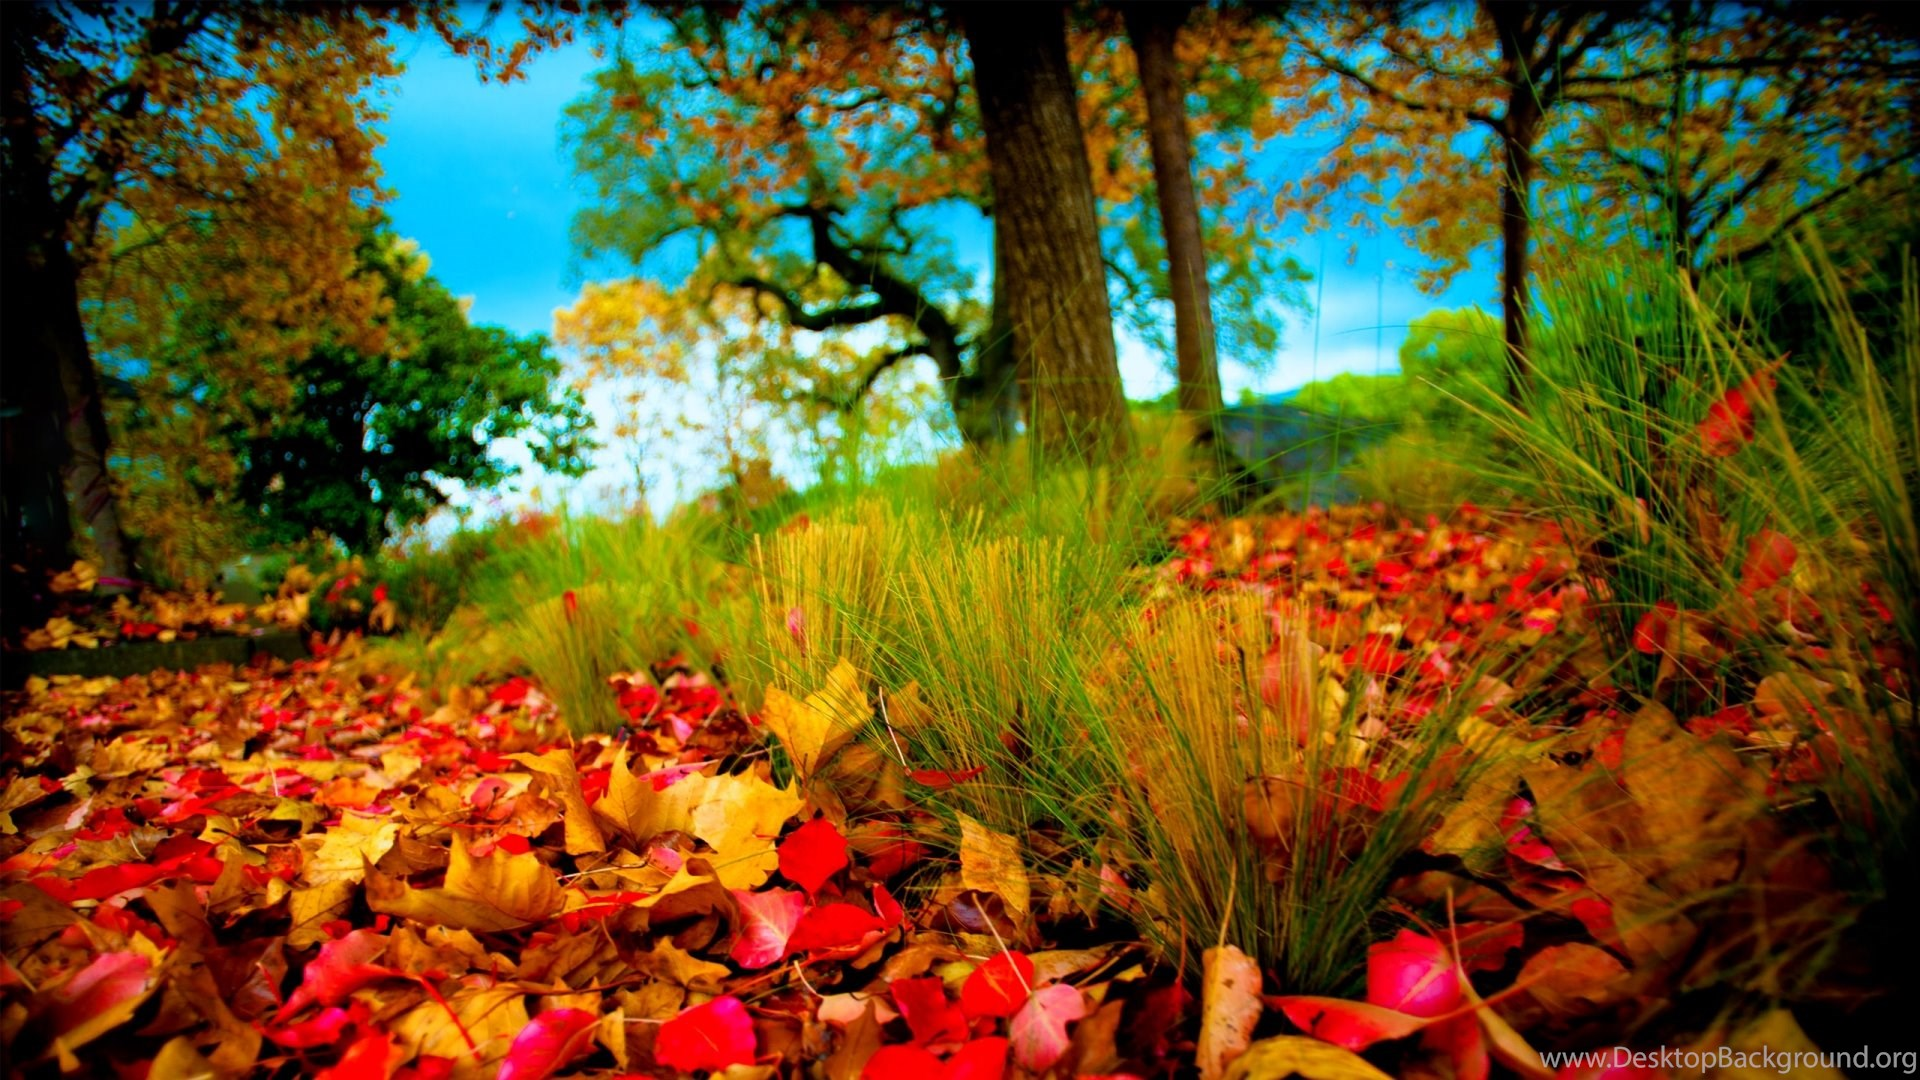 fall leaves images uhd wallpapers ultra high definition desktop